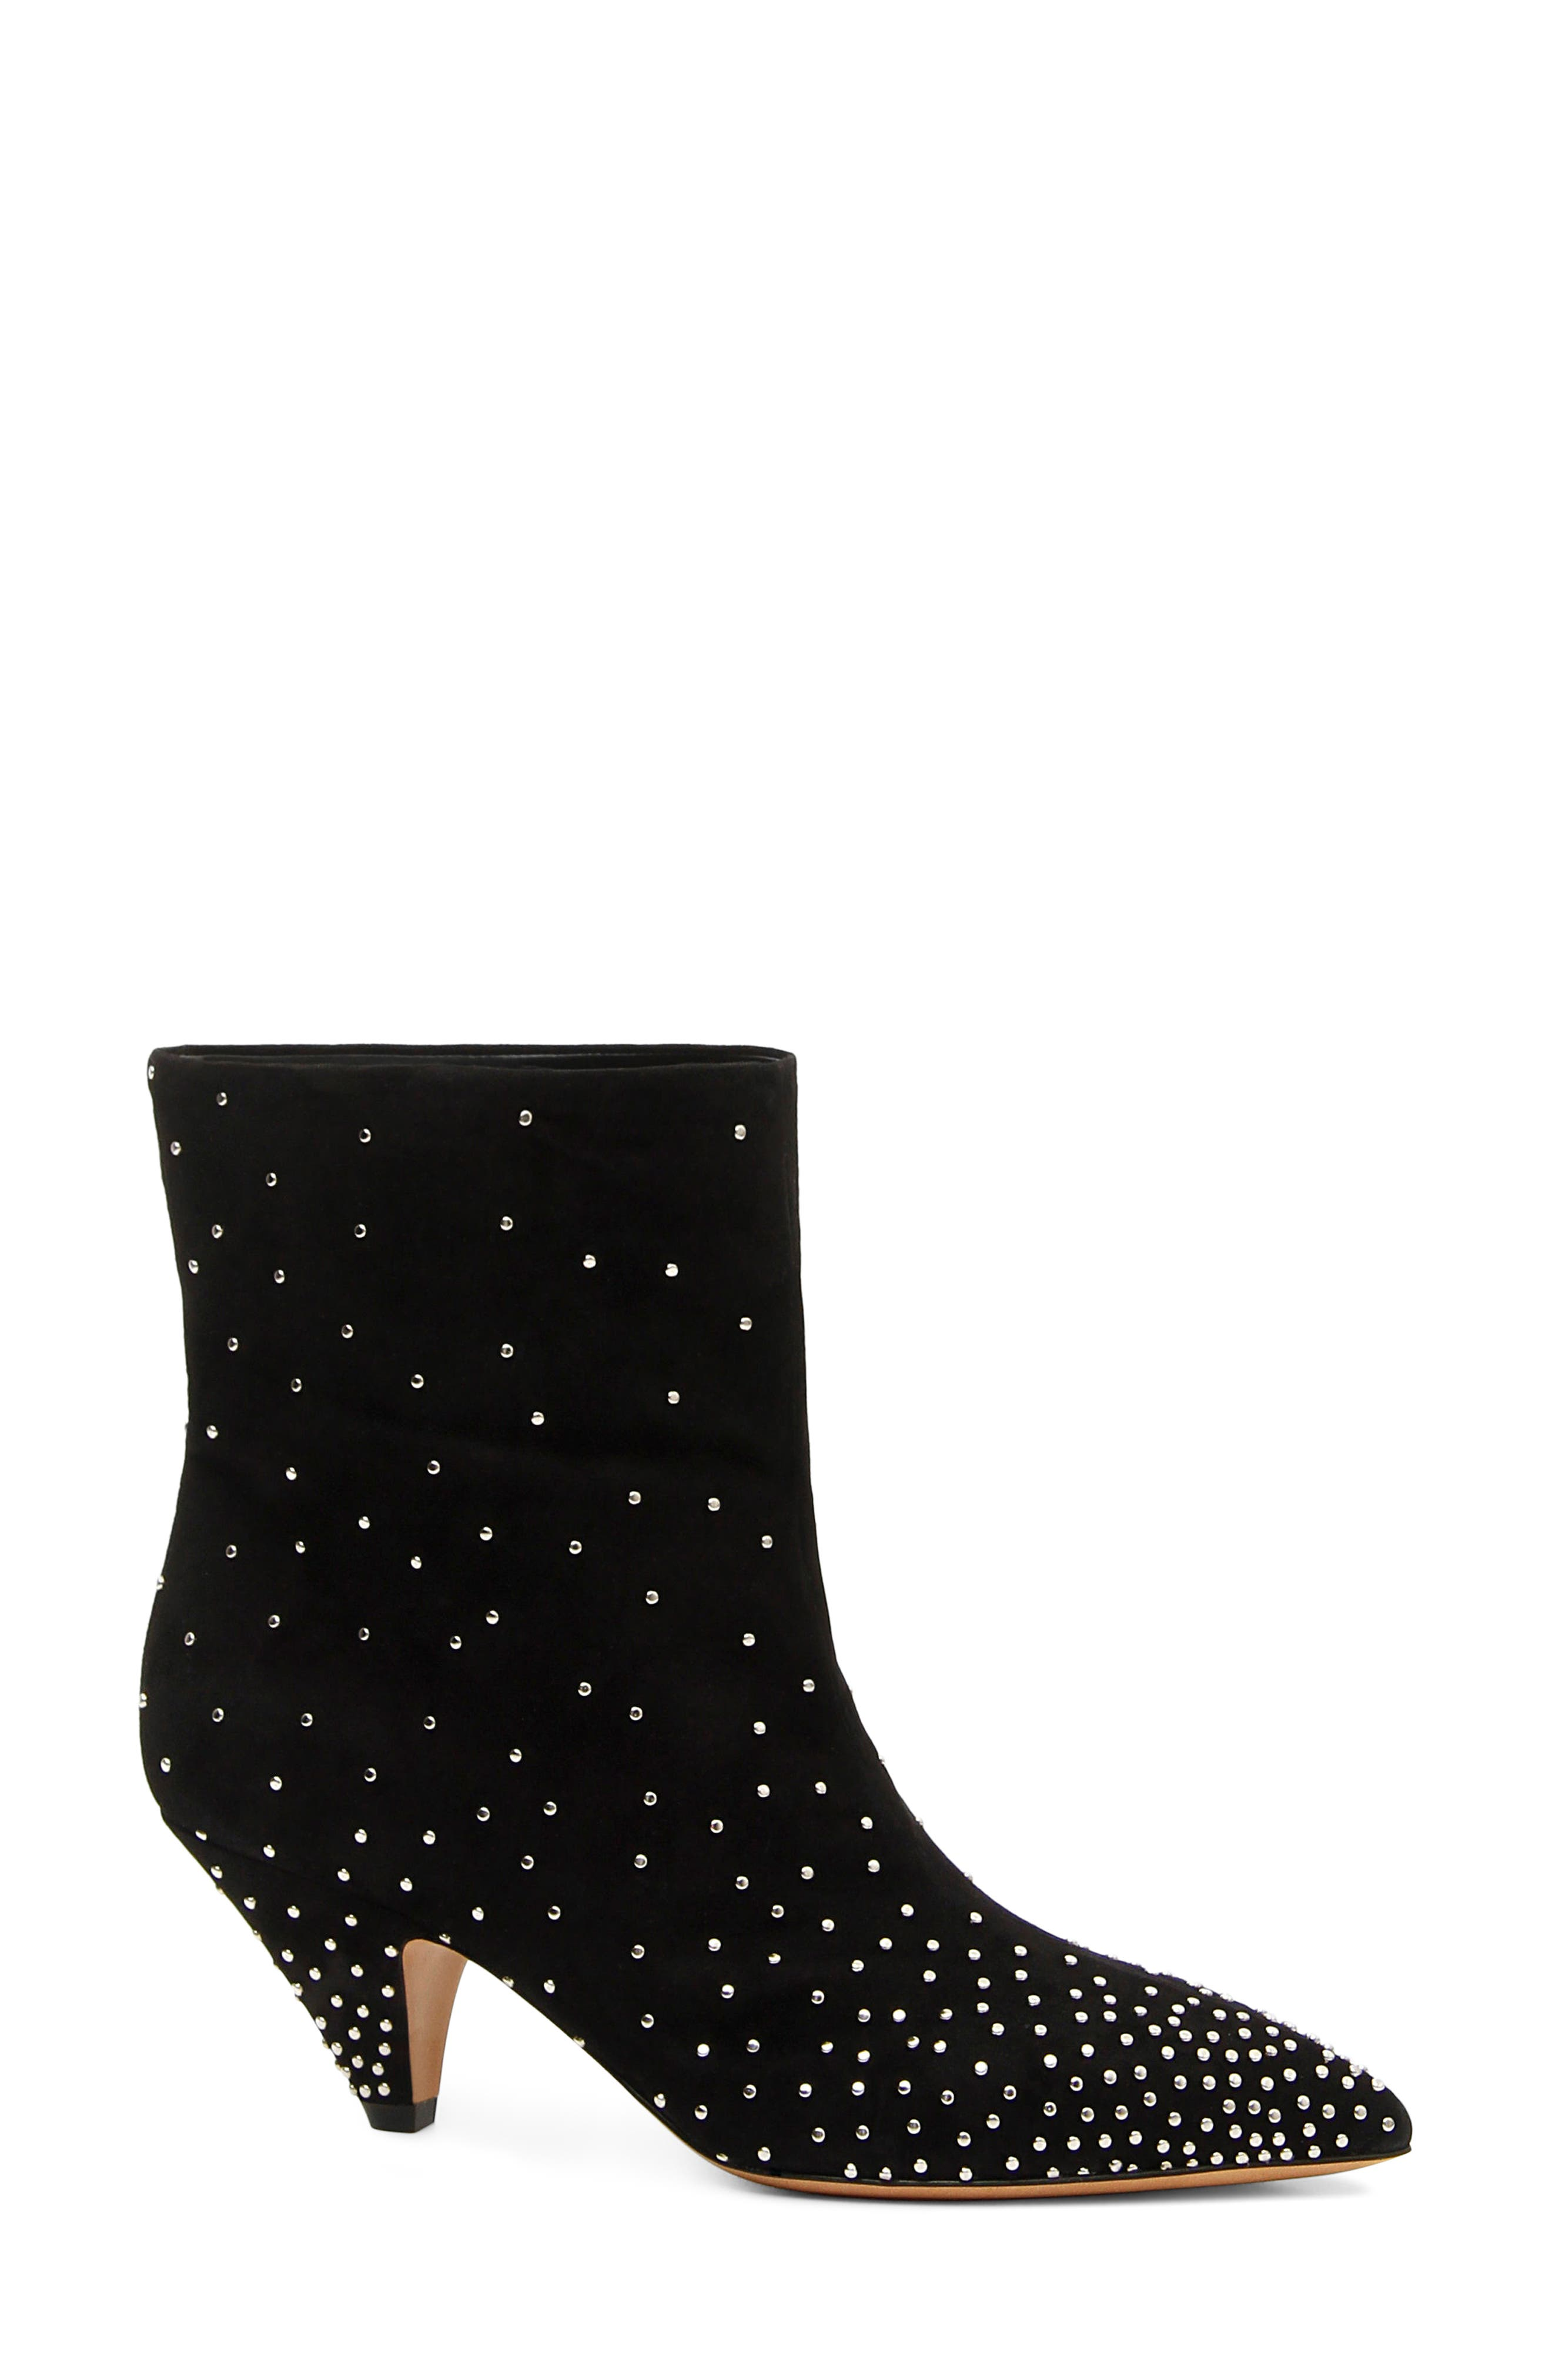 Studded Ankle Boots in Black